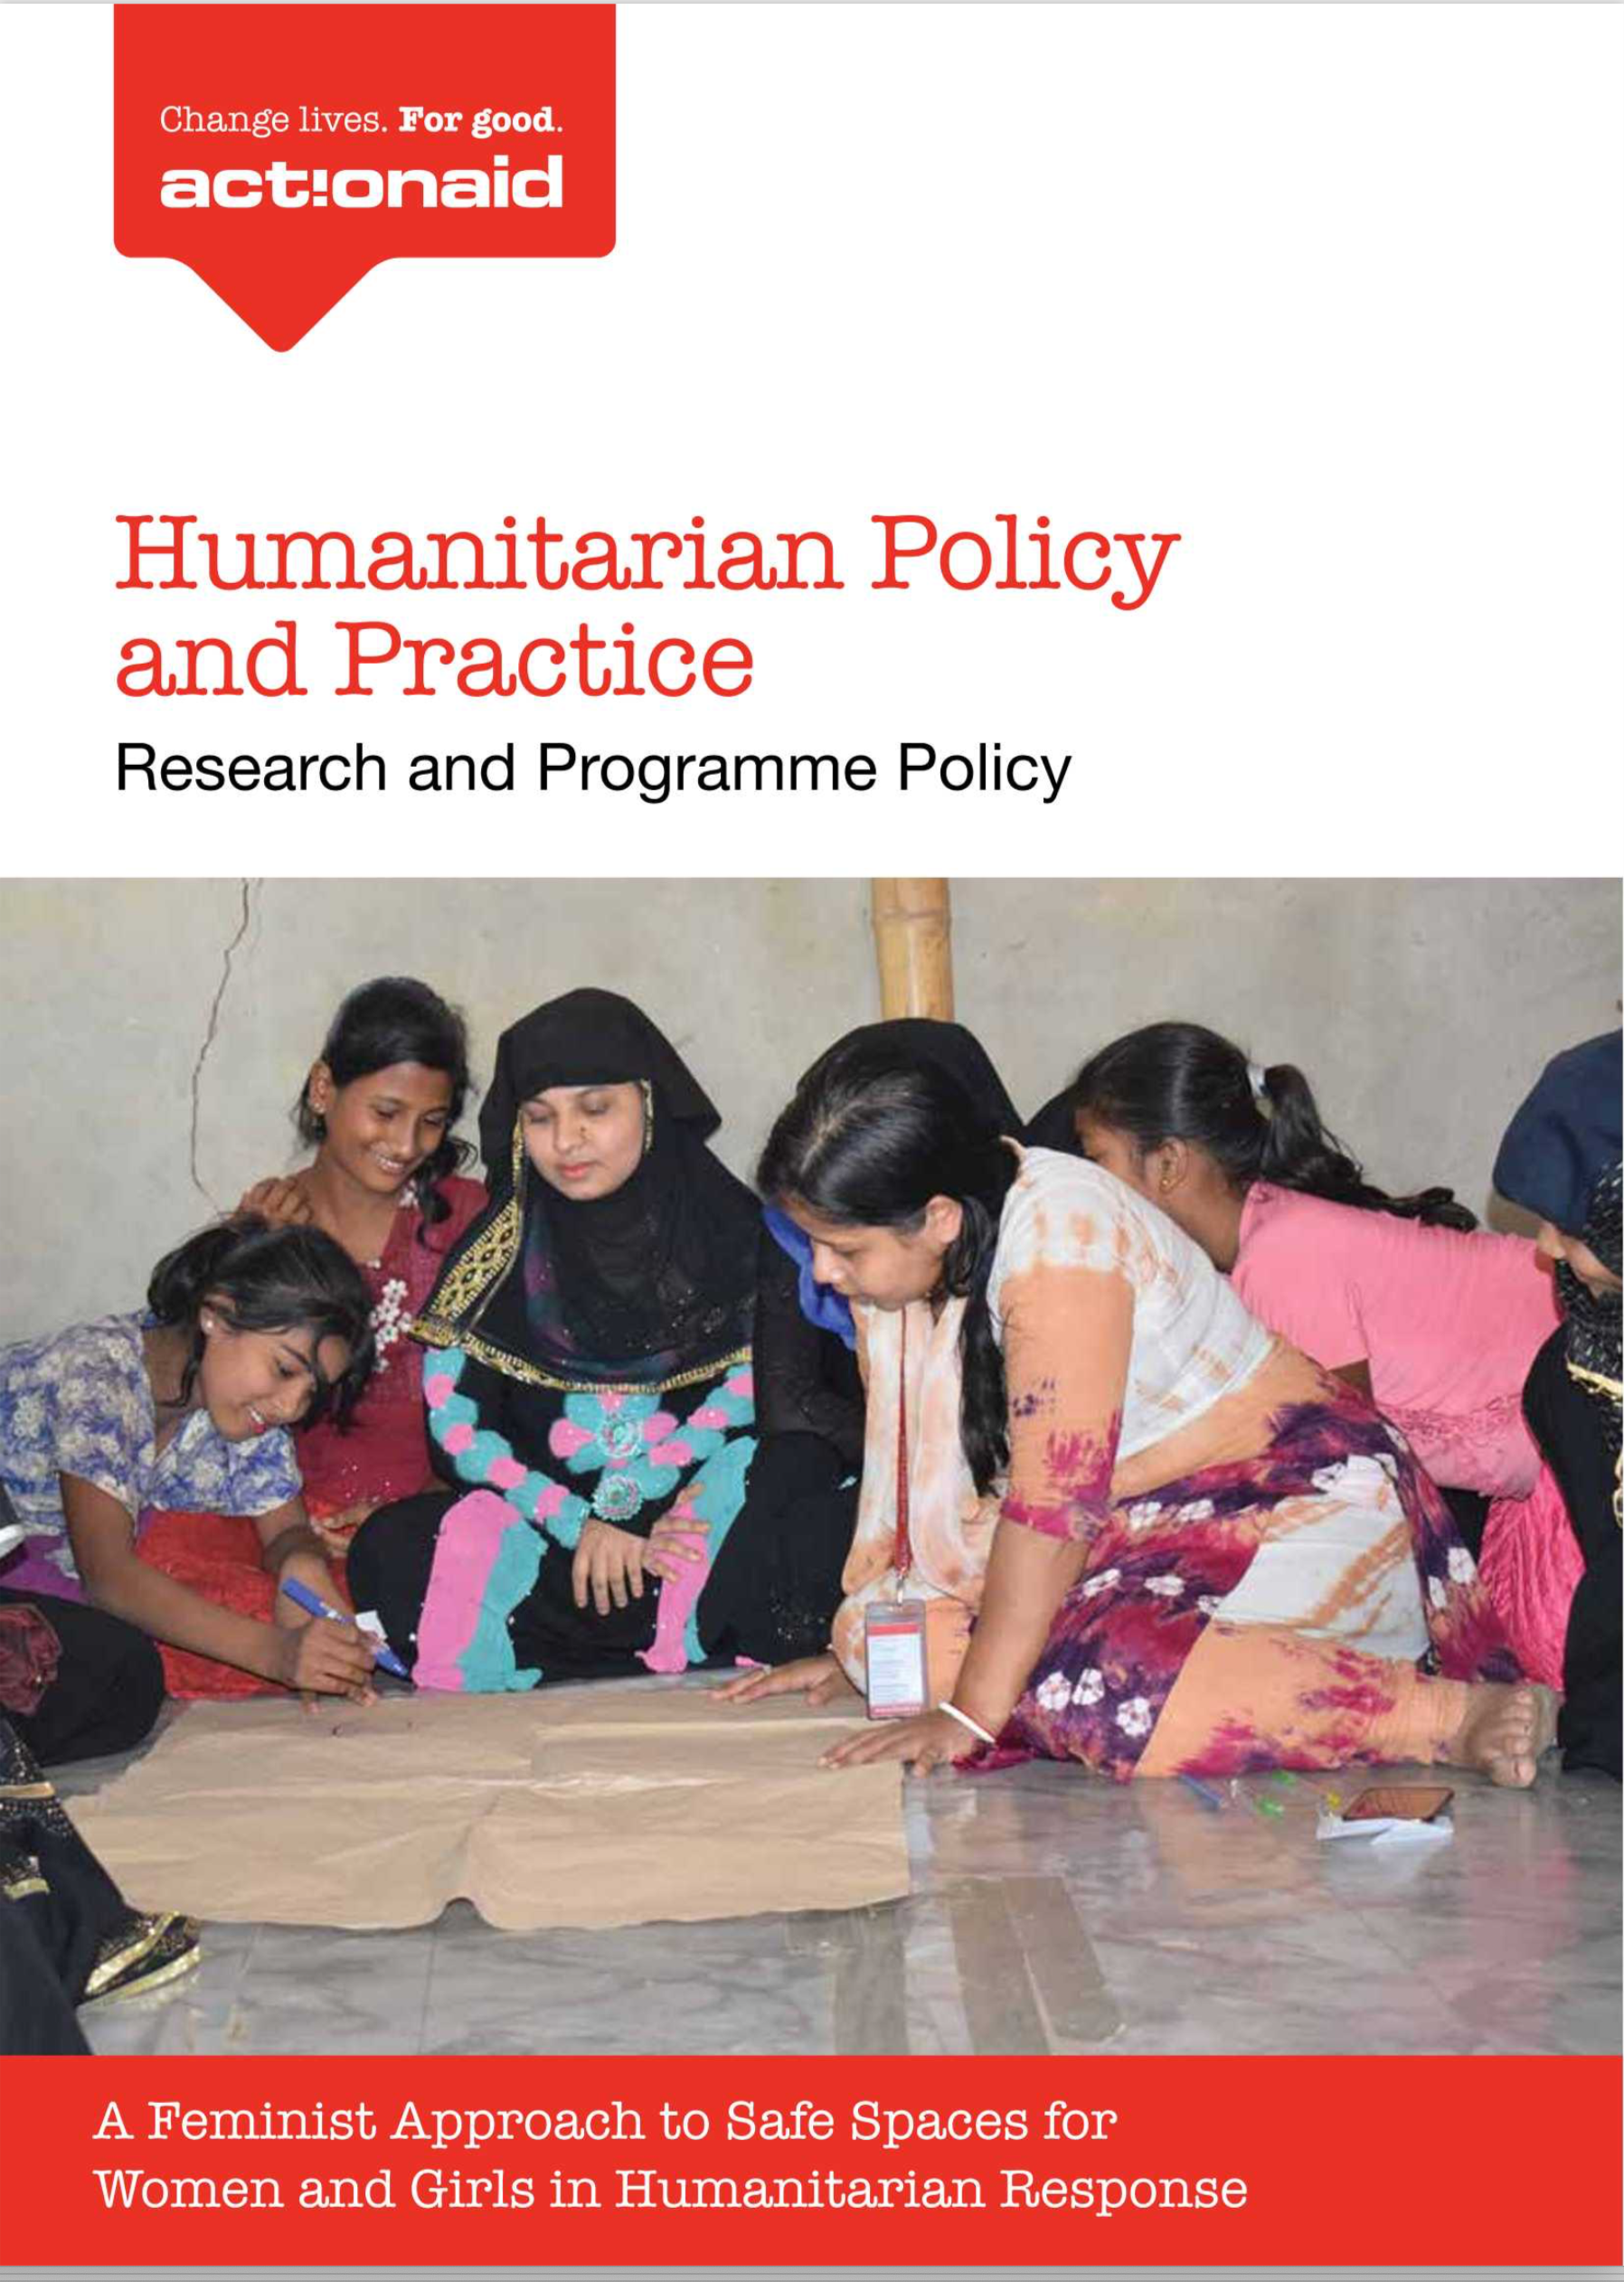 A feminist approach to safe spaces for women and girls in humanitarian response